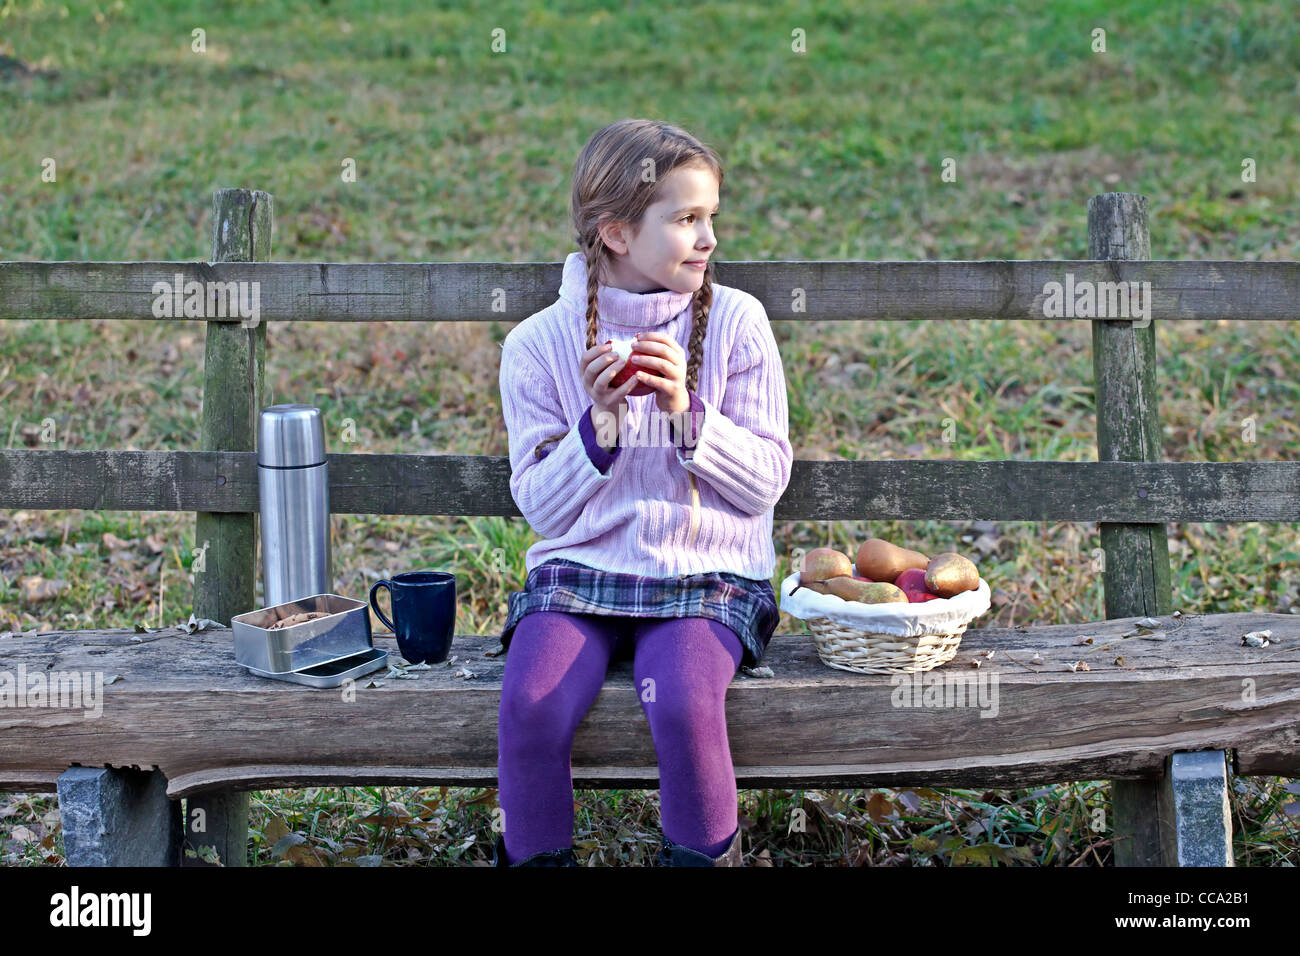 Girl sitting on a wooden bench in a meadow and picnicking - Stock Image